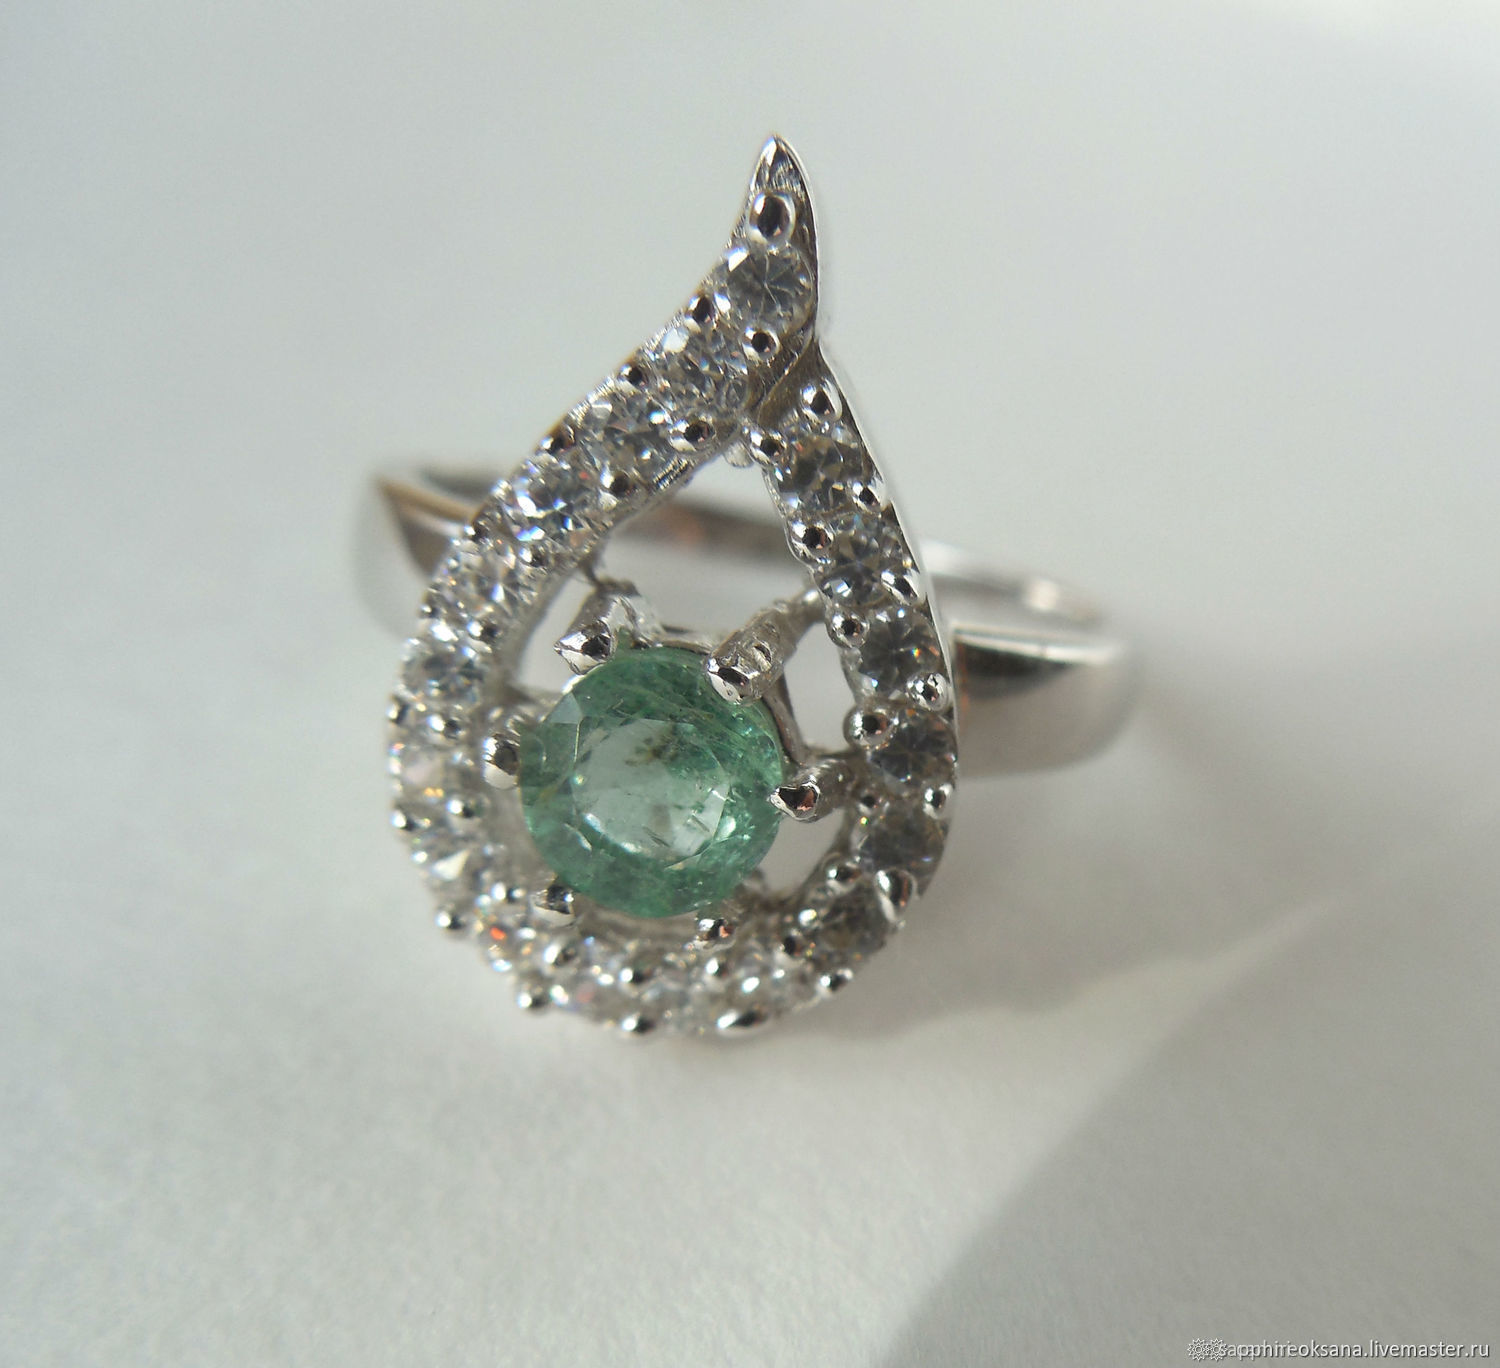 Silver ring with emerald and cubic Zirconia, Rings, Pyatigorsk,  Фото №1